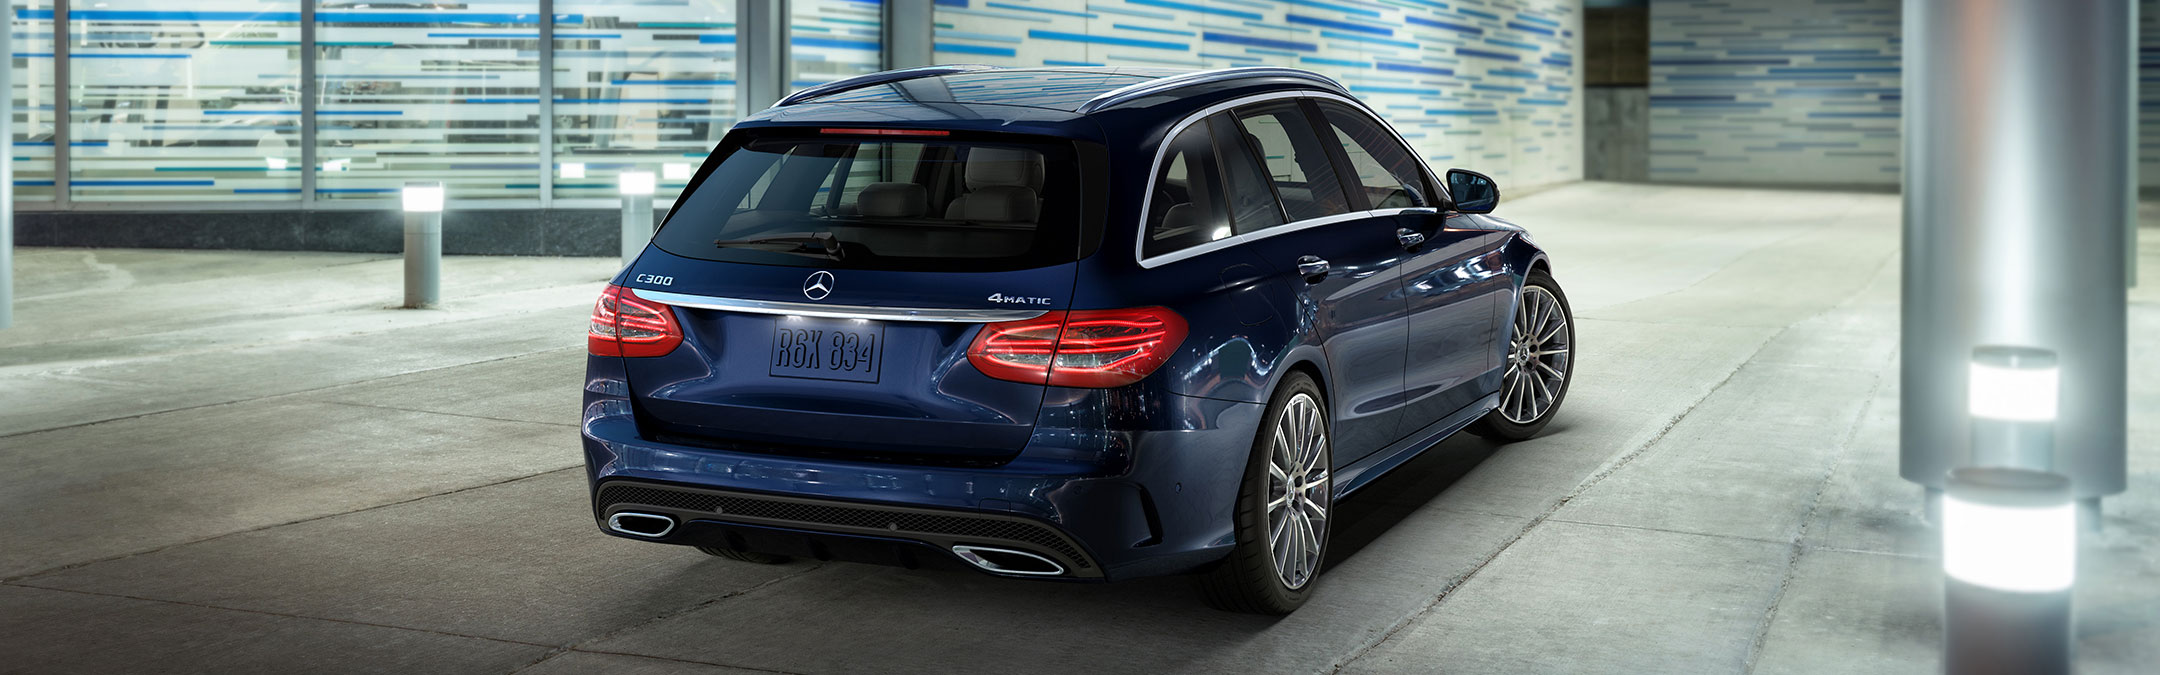 2018 C-Wagon Design